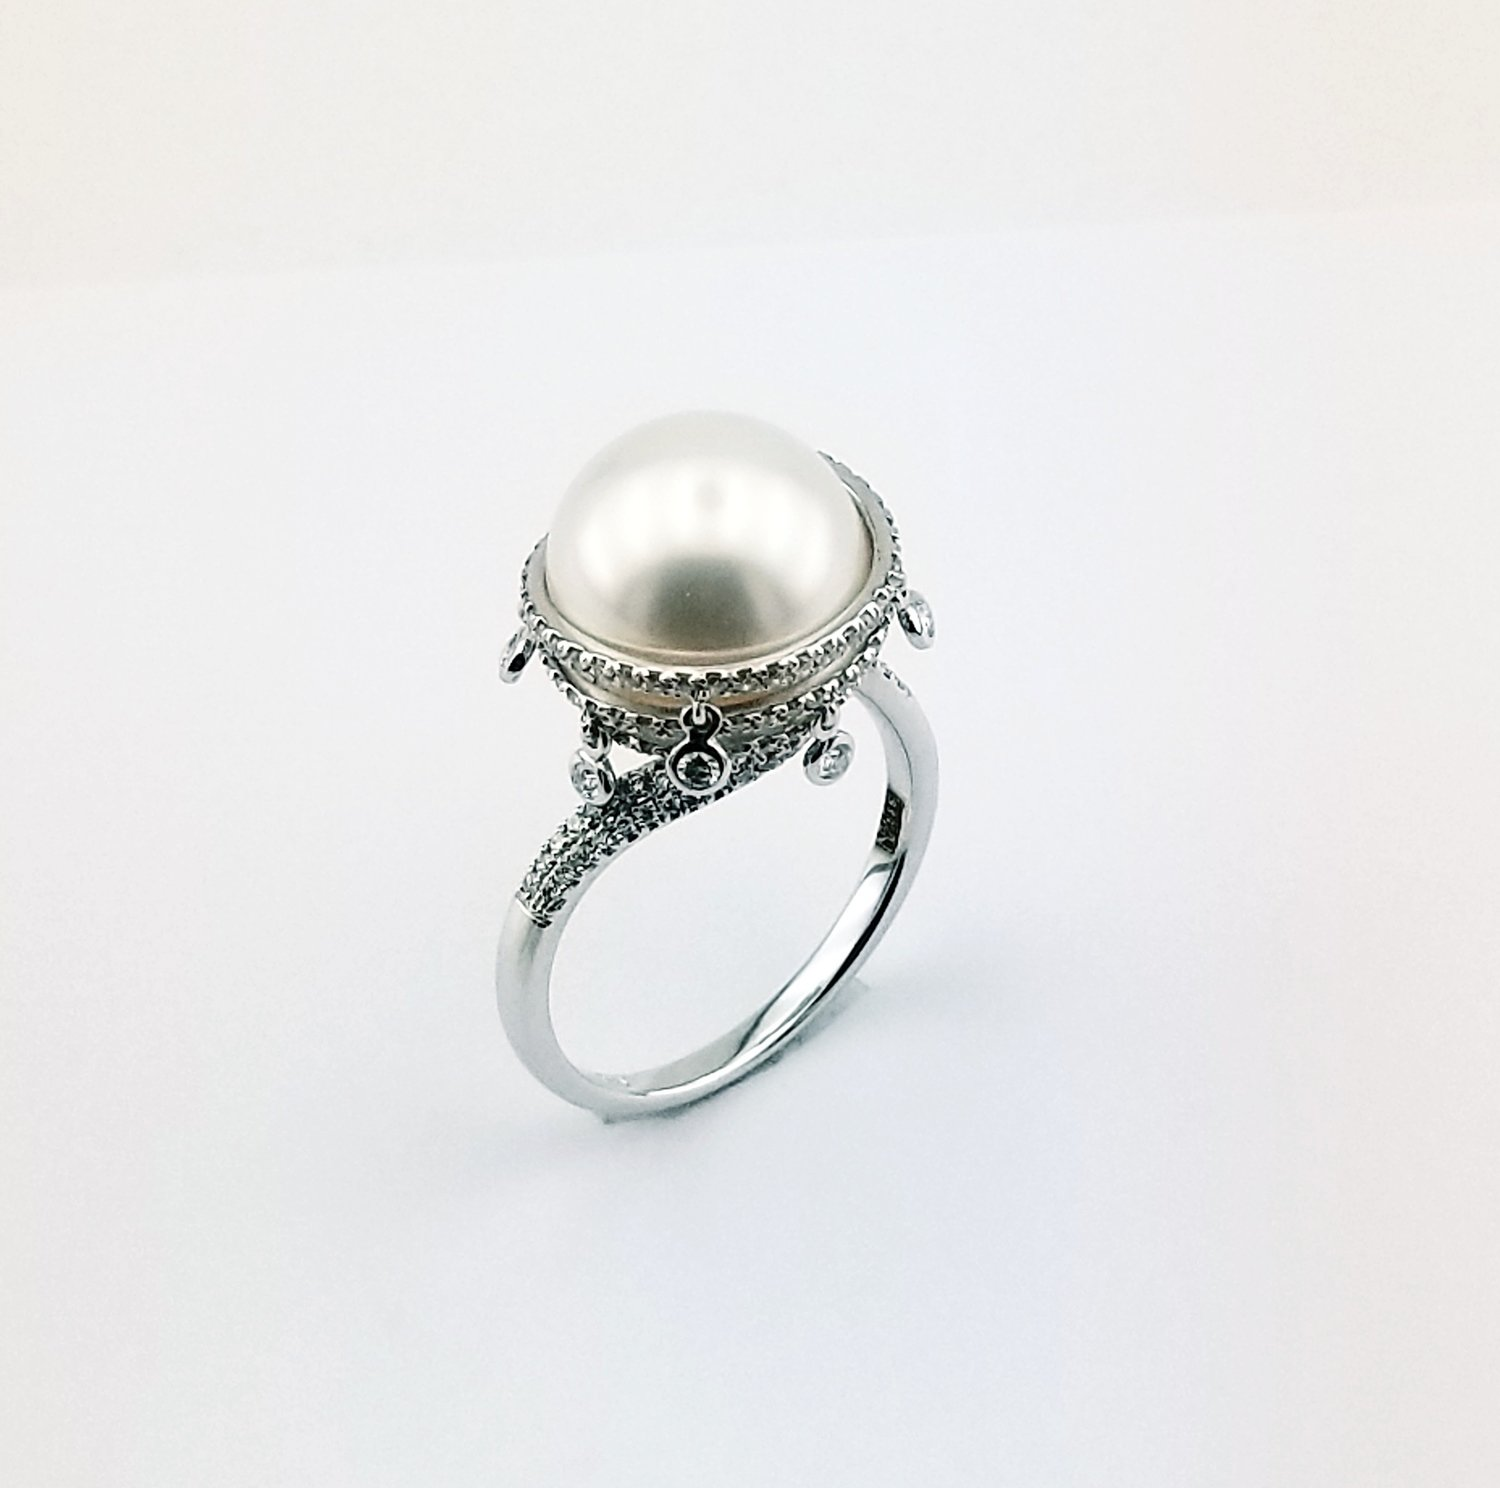 Pearl and diamond ring in 14K white gold